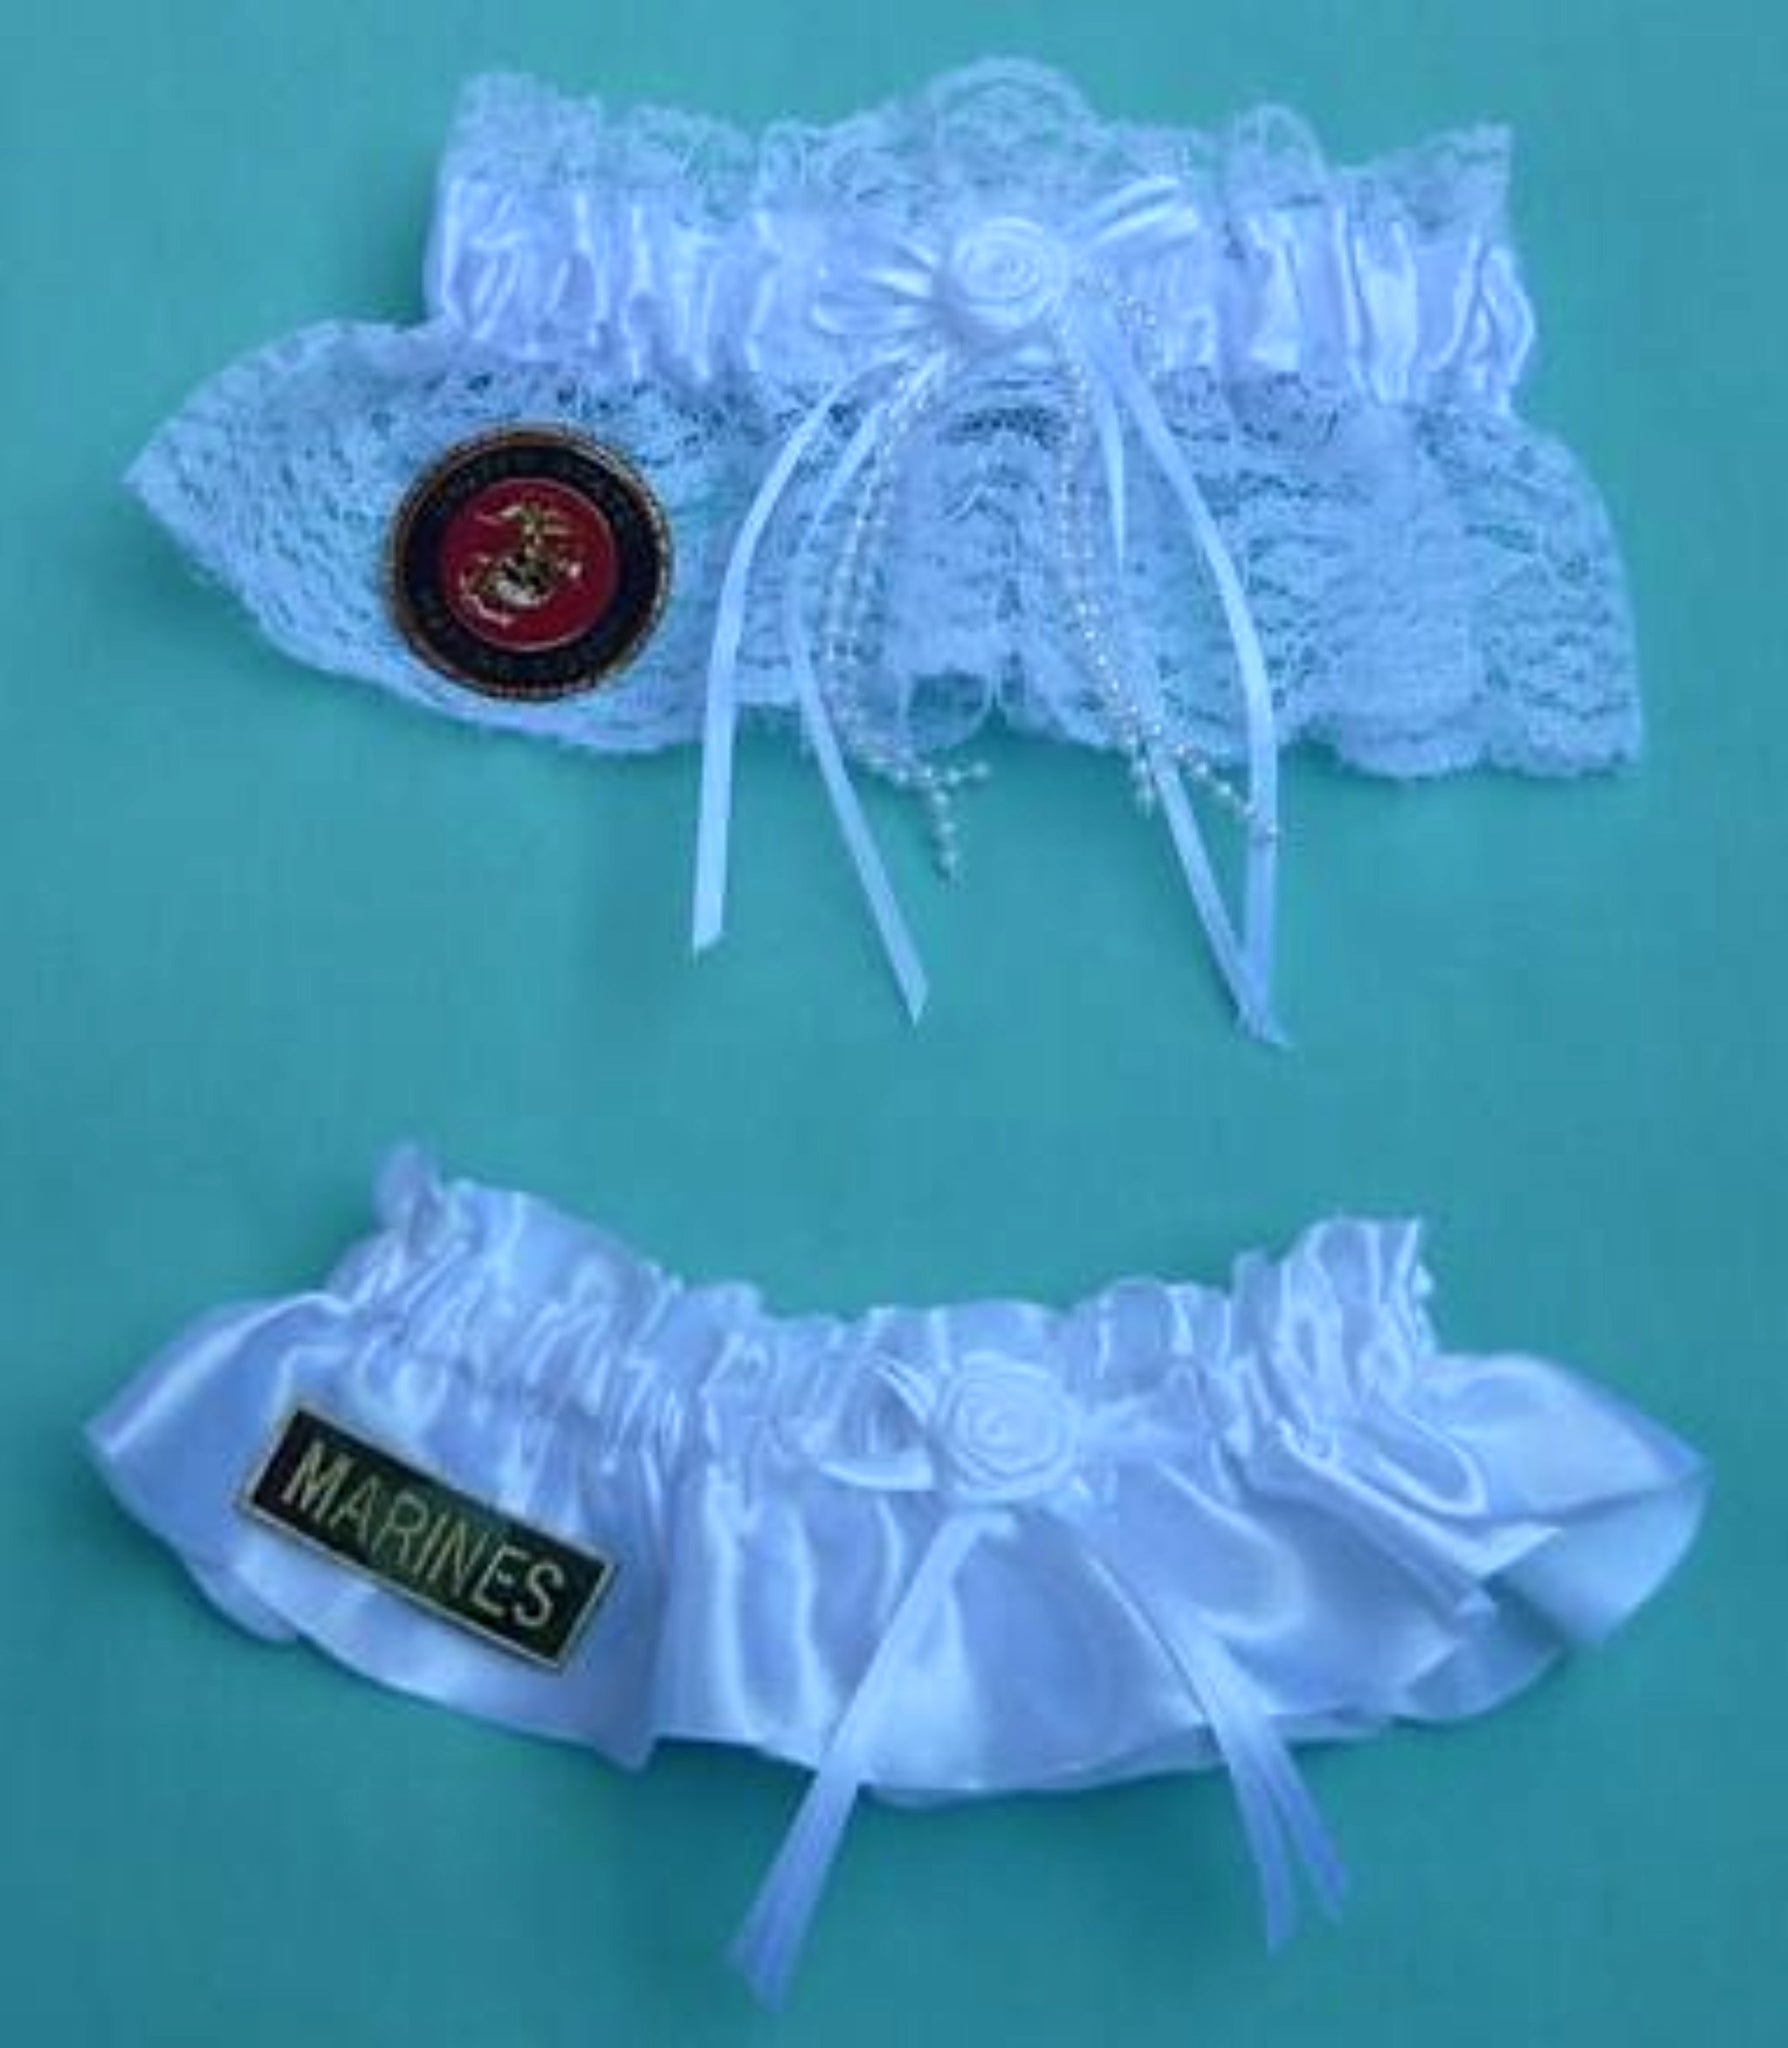 Marines wedding garter U.S. Marine Corps bridal garter set USMC enlisted military service reception gift Fun Wedding Things